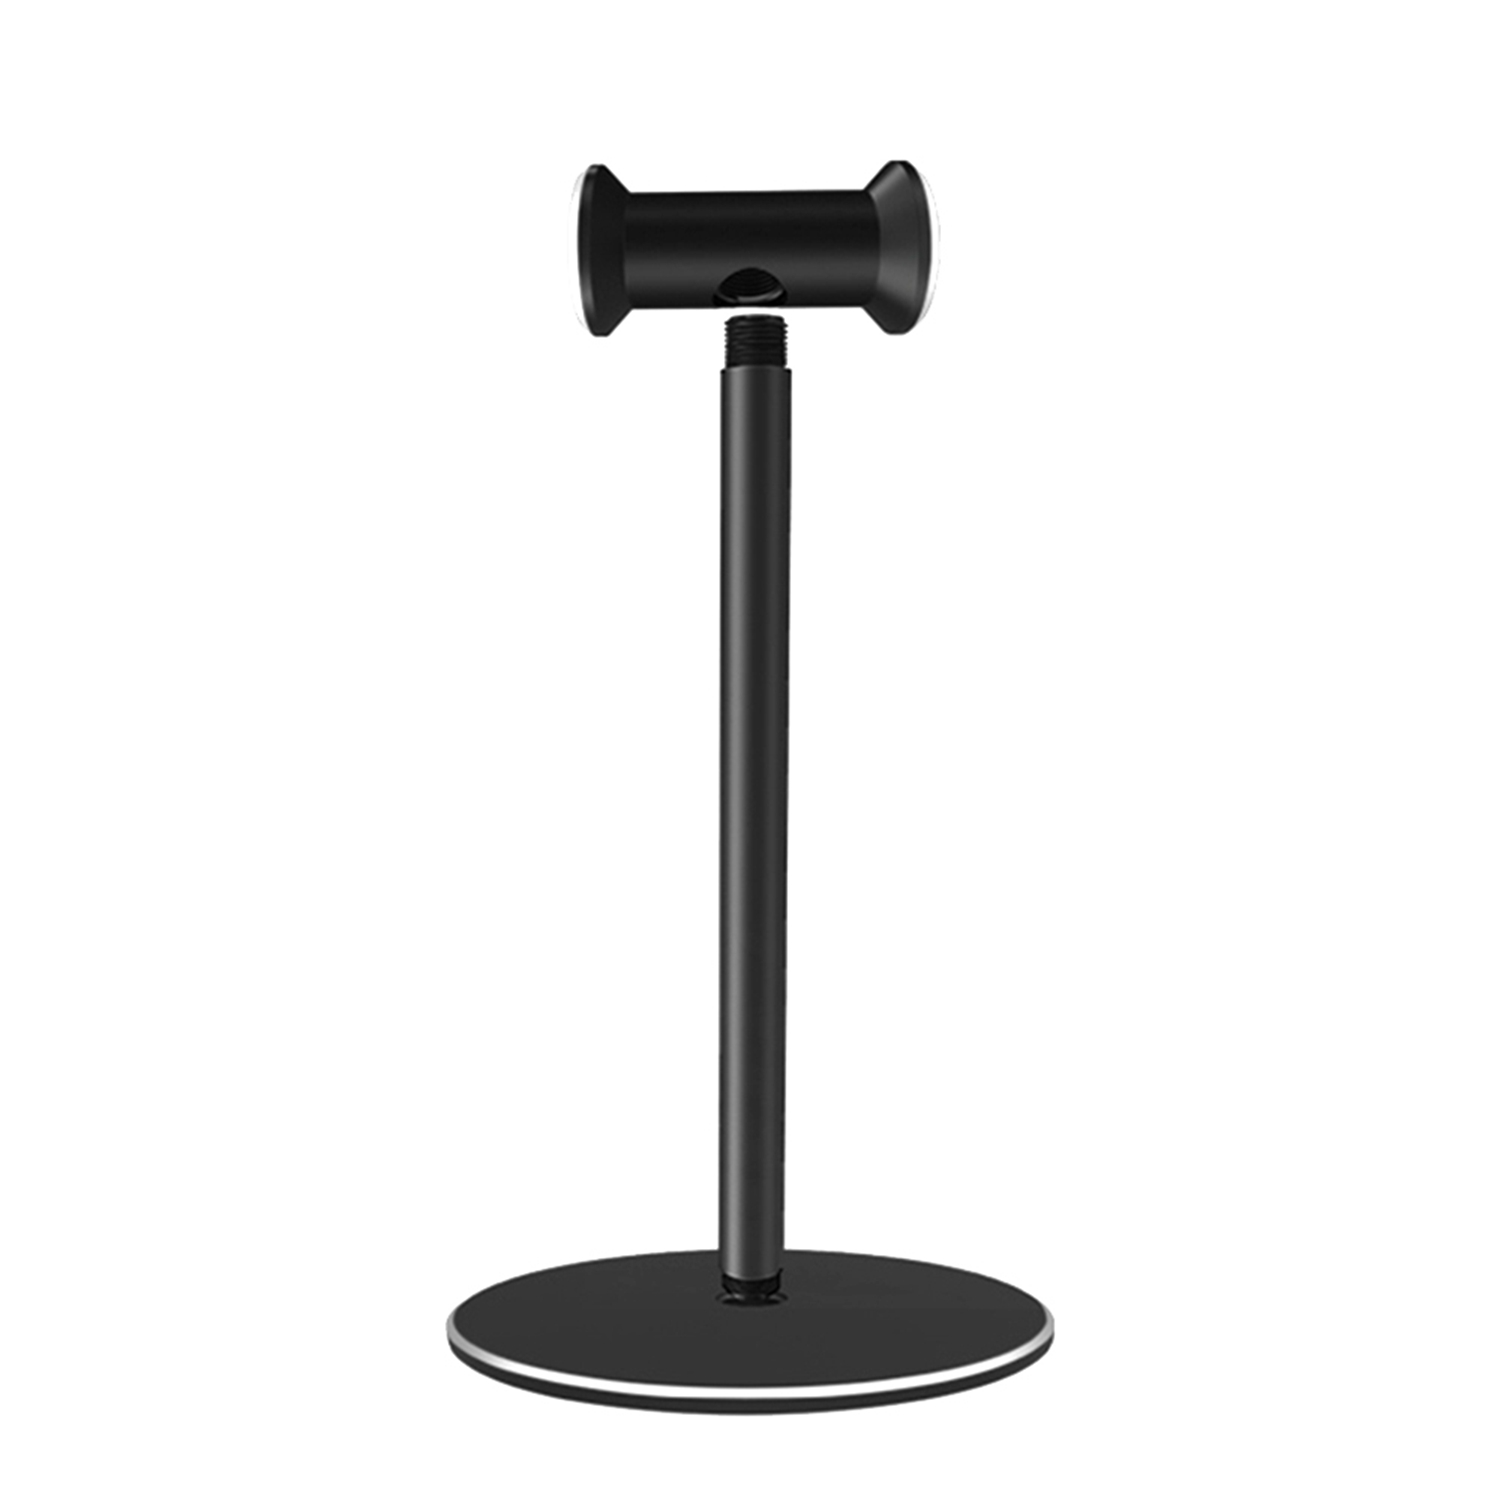 Detachable Metal Headphones Holder Aluminum Alloy Stand Stable Desktop Bracket With Silicone Pad For Gaming Headsets